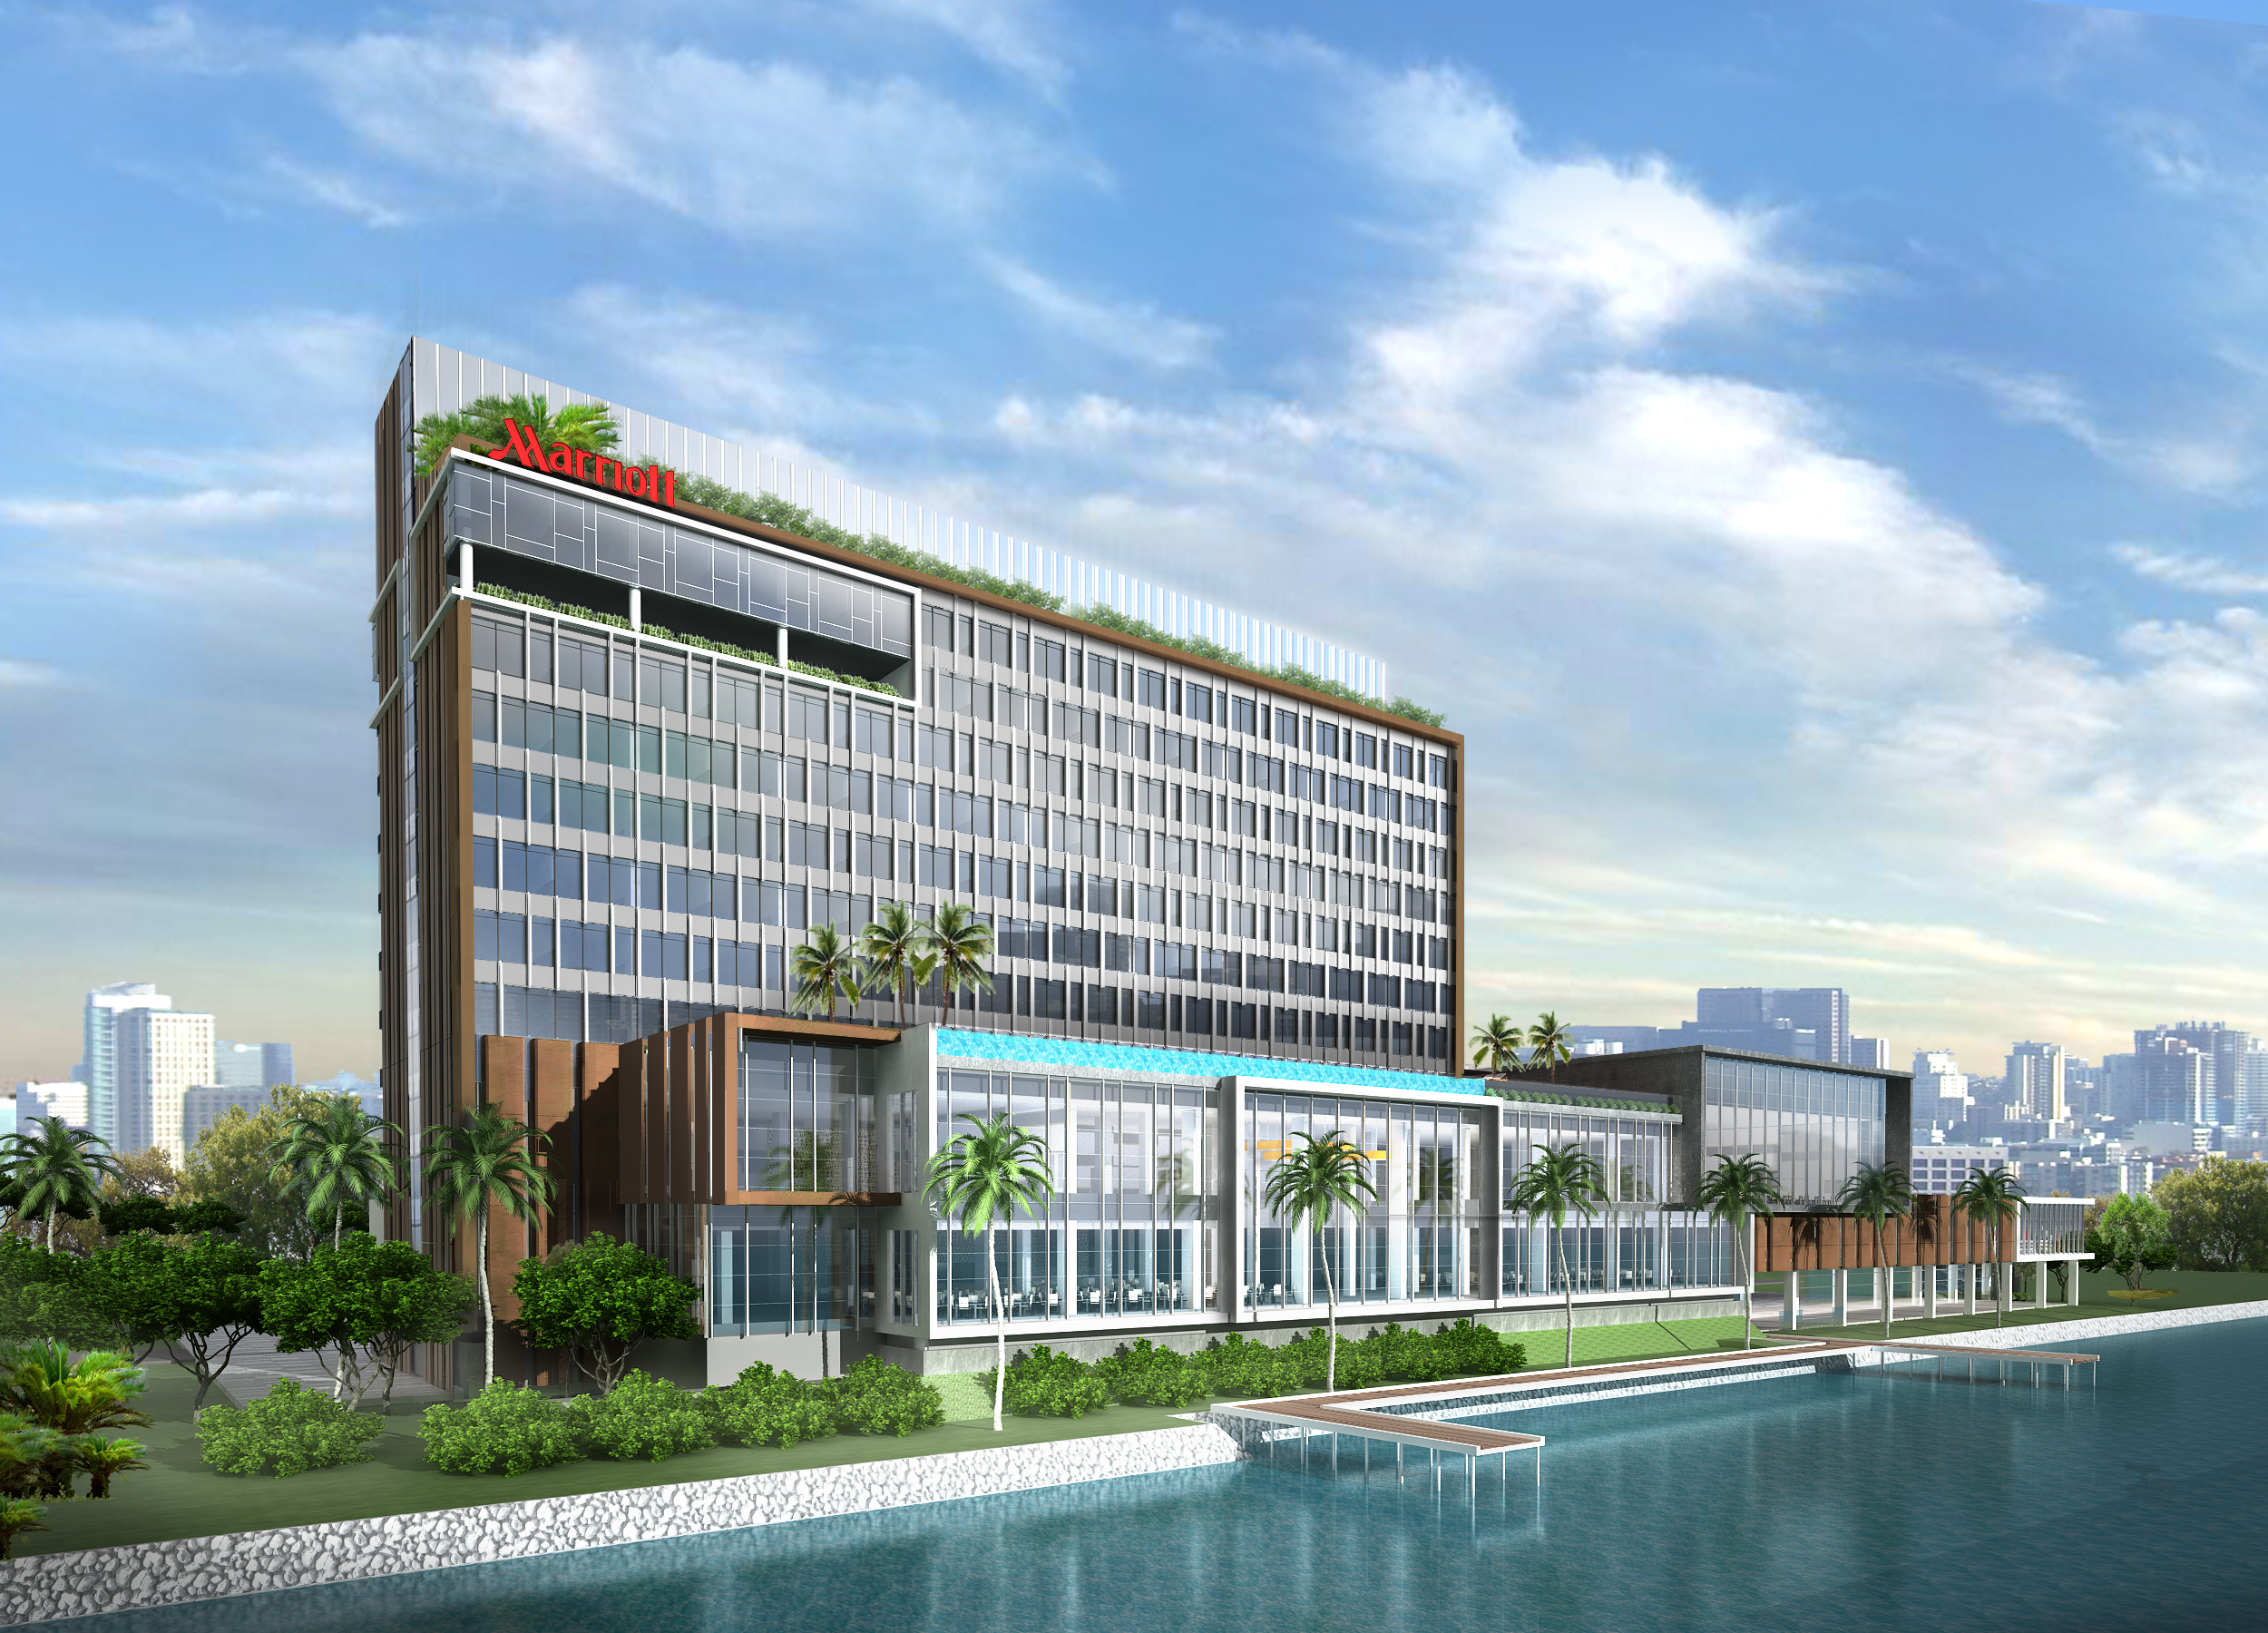 509_-_JW_Marriott_Batam